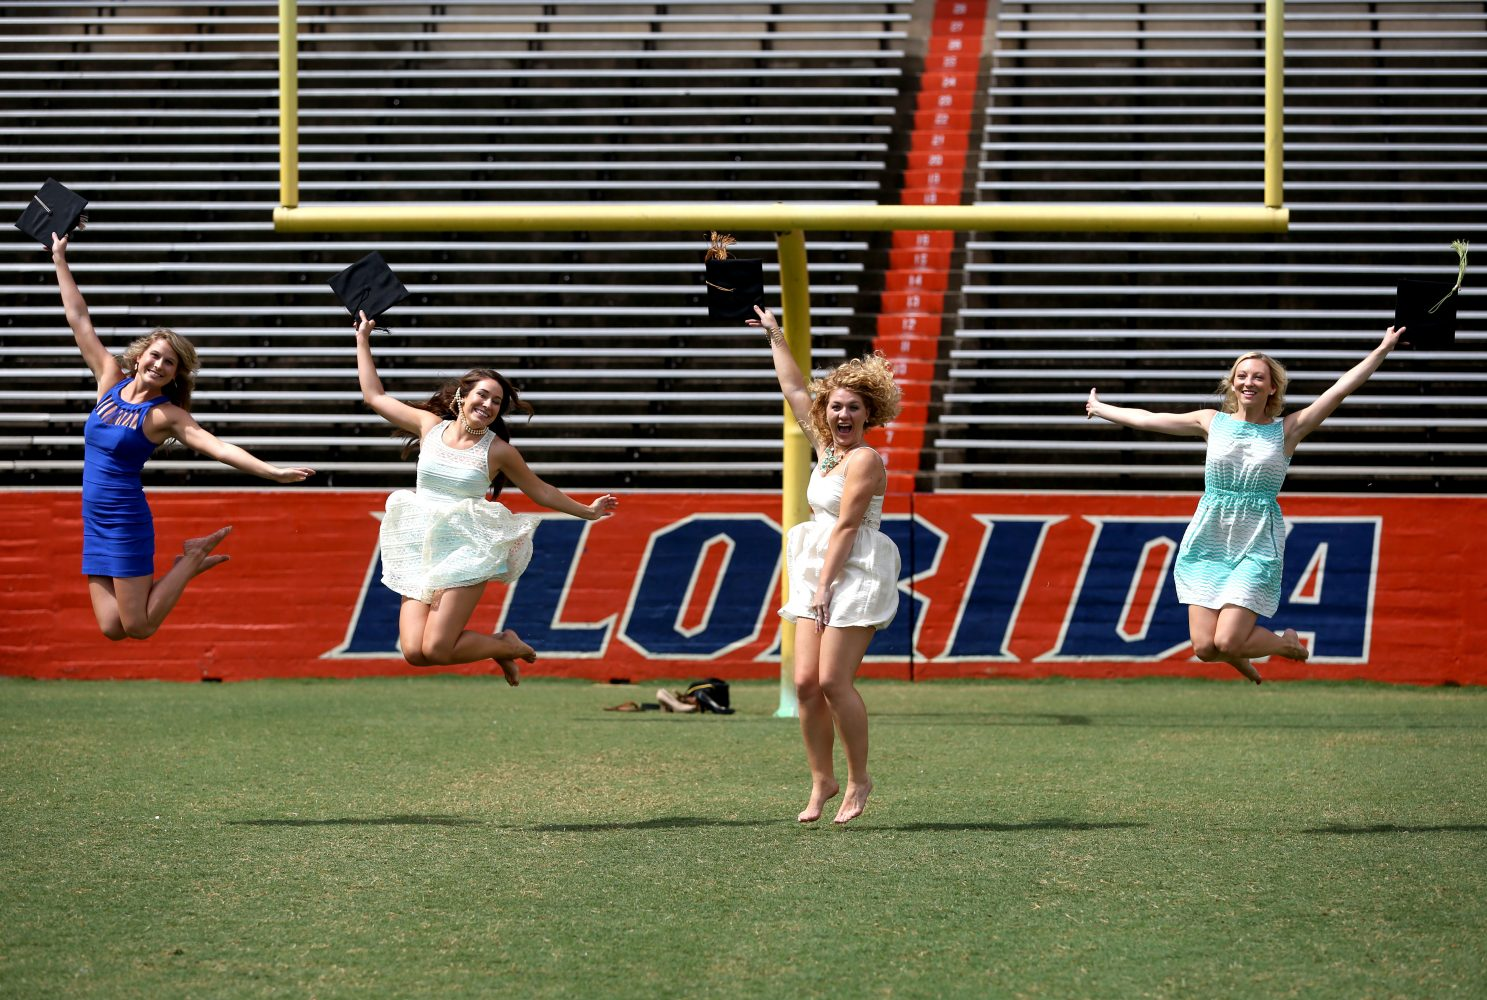 Graduates pose for a photo during their graduation shoot at Ben Hill Griffin Stadium at the University of Florida on Thursday, May 1, 2014, in Gainesville Fla.